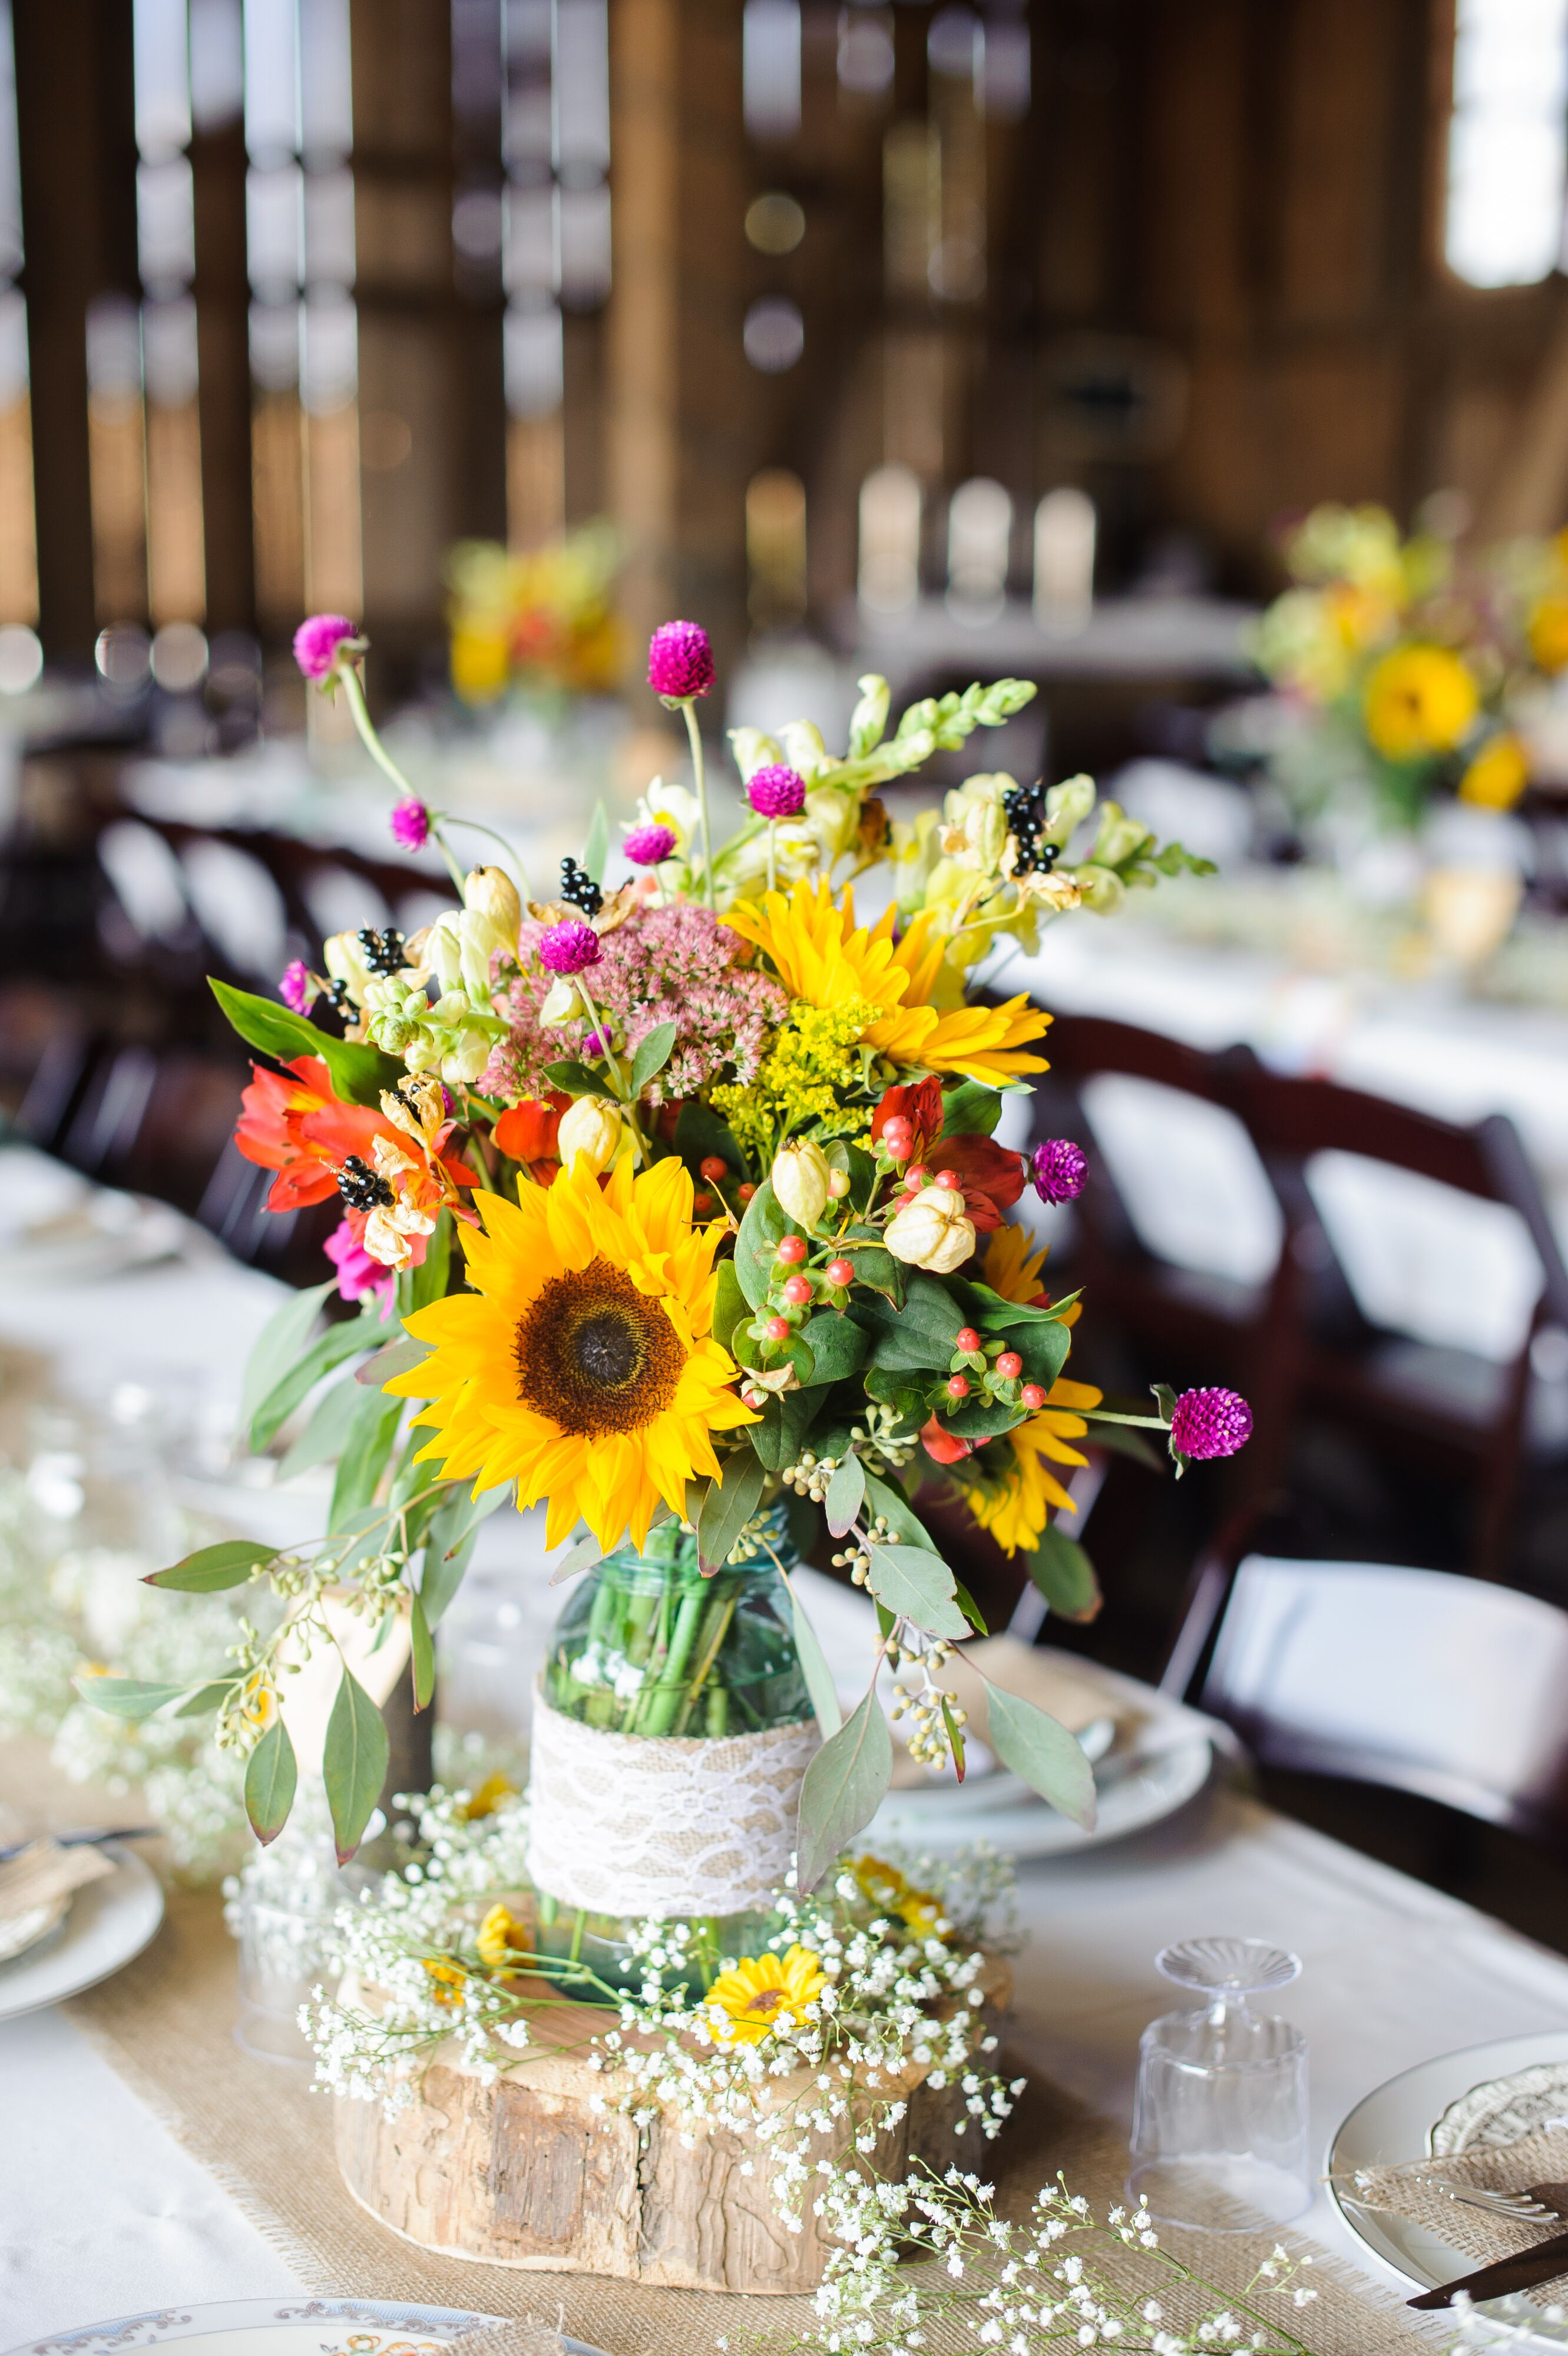 Pink And Yellow Centerpieces In Mason Jars On Burlap Table